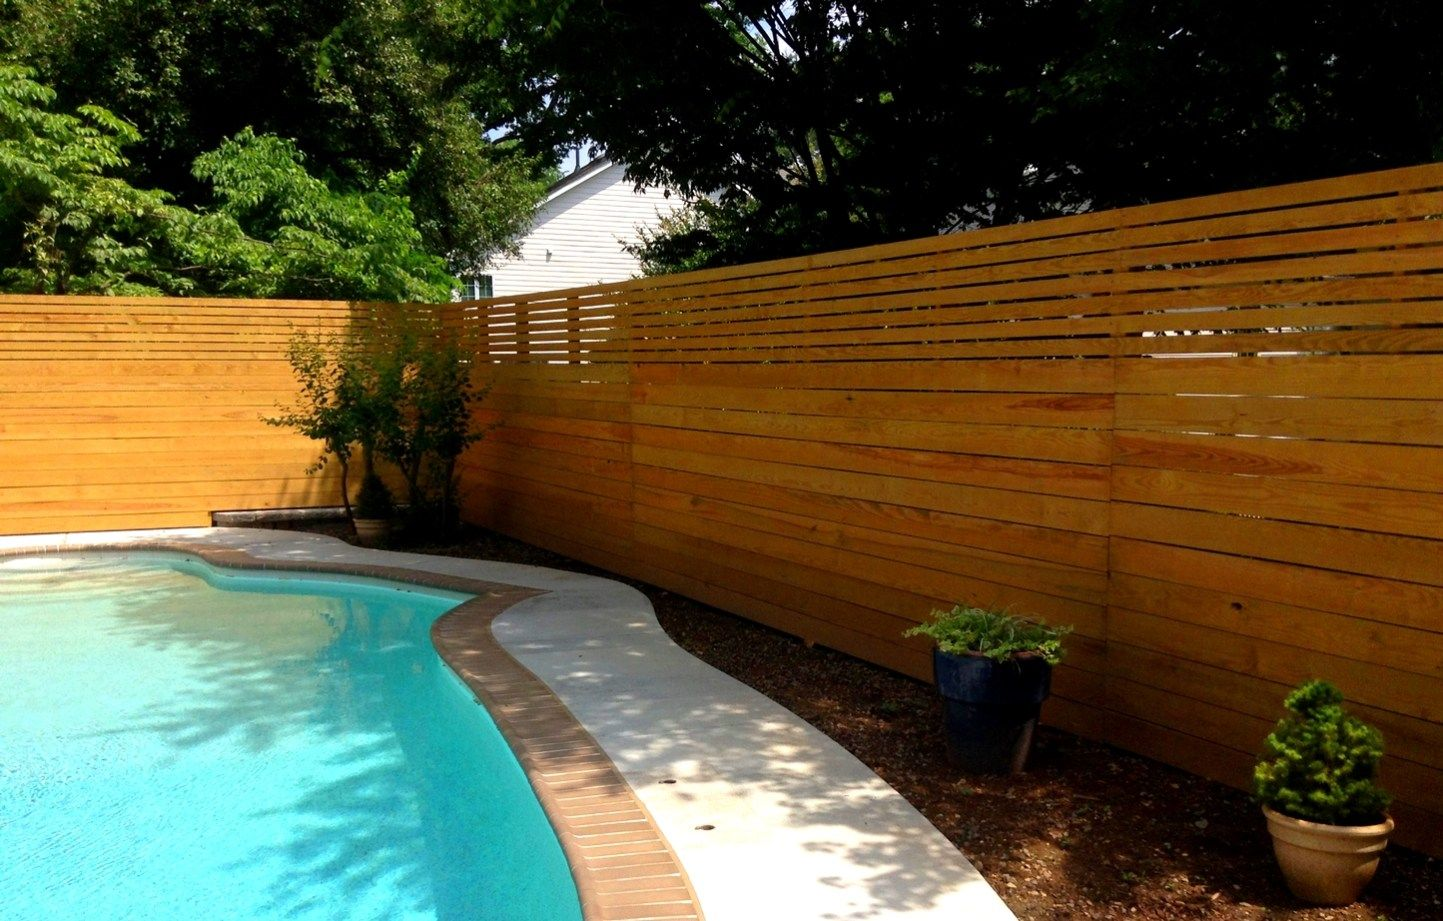 wood privacy fence 6ft privacy fence large privacy fence wood rh pinterest com best privacy fence designs privacy fence design ideas